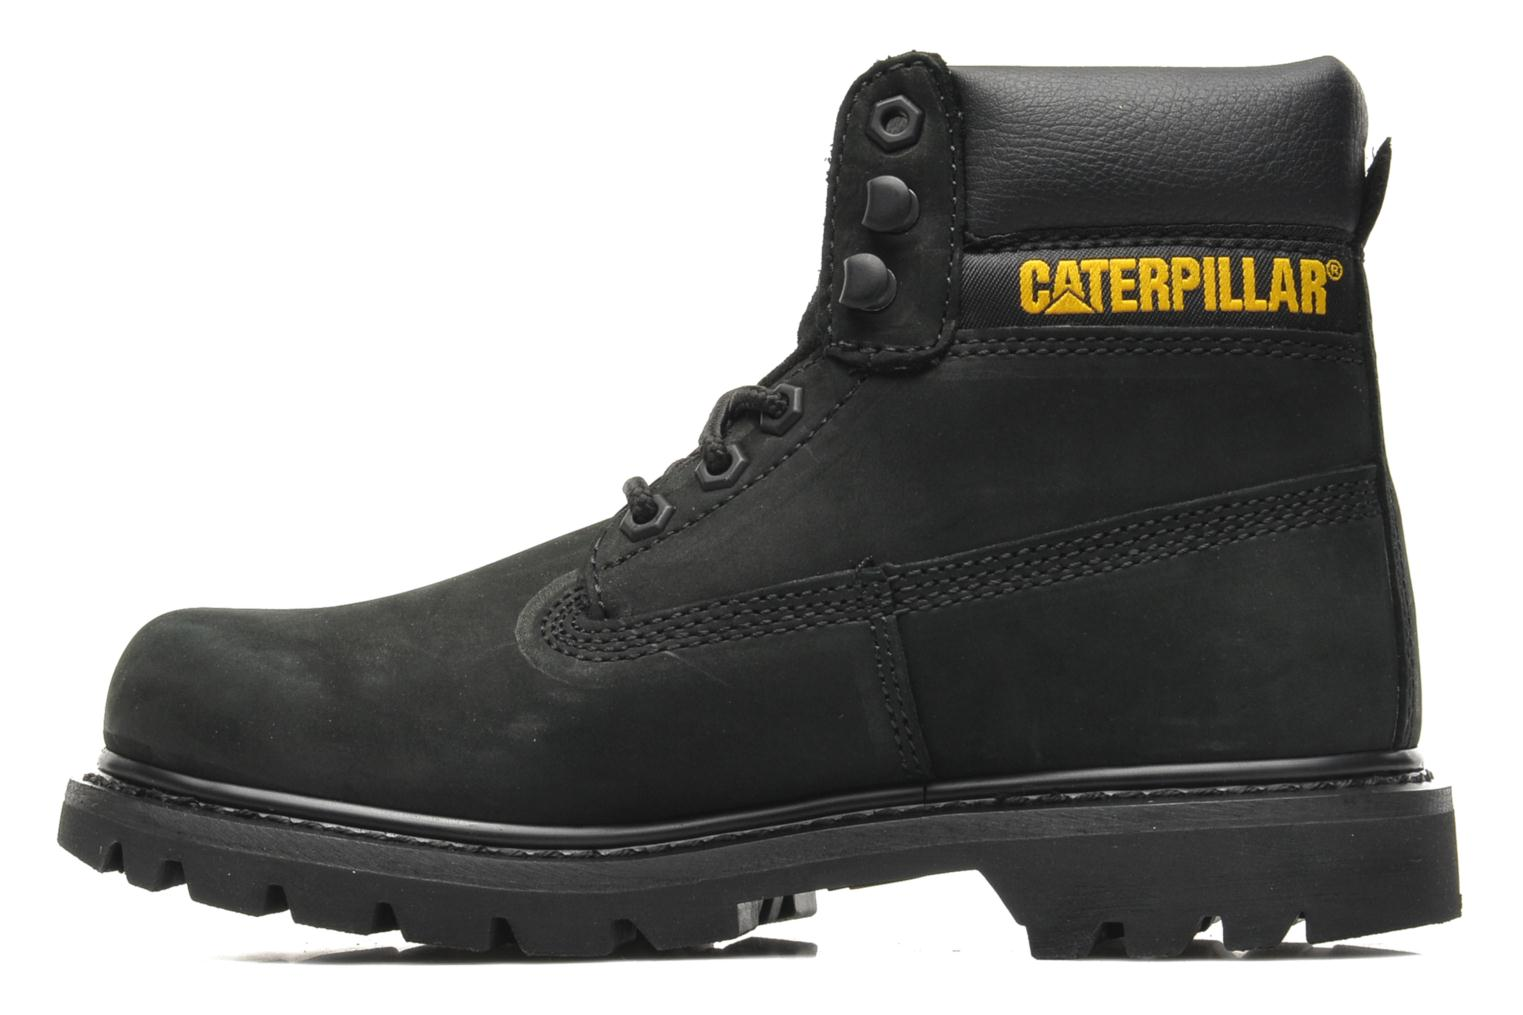 Bottines et boots Caterpillar COLORADO W Noir vue face